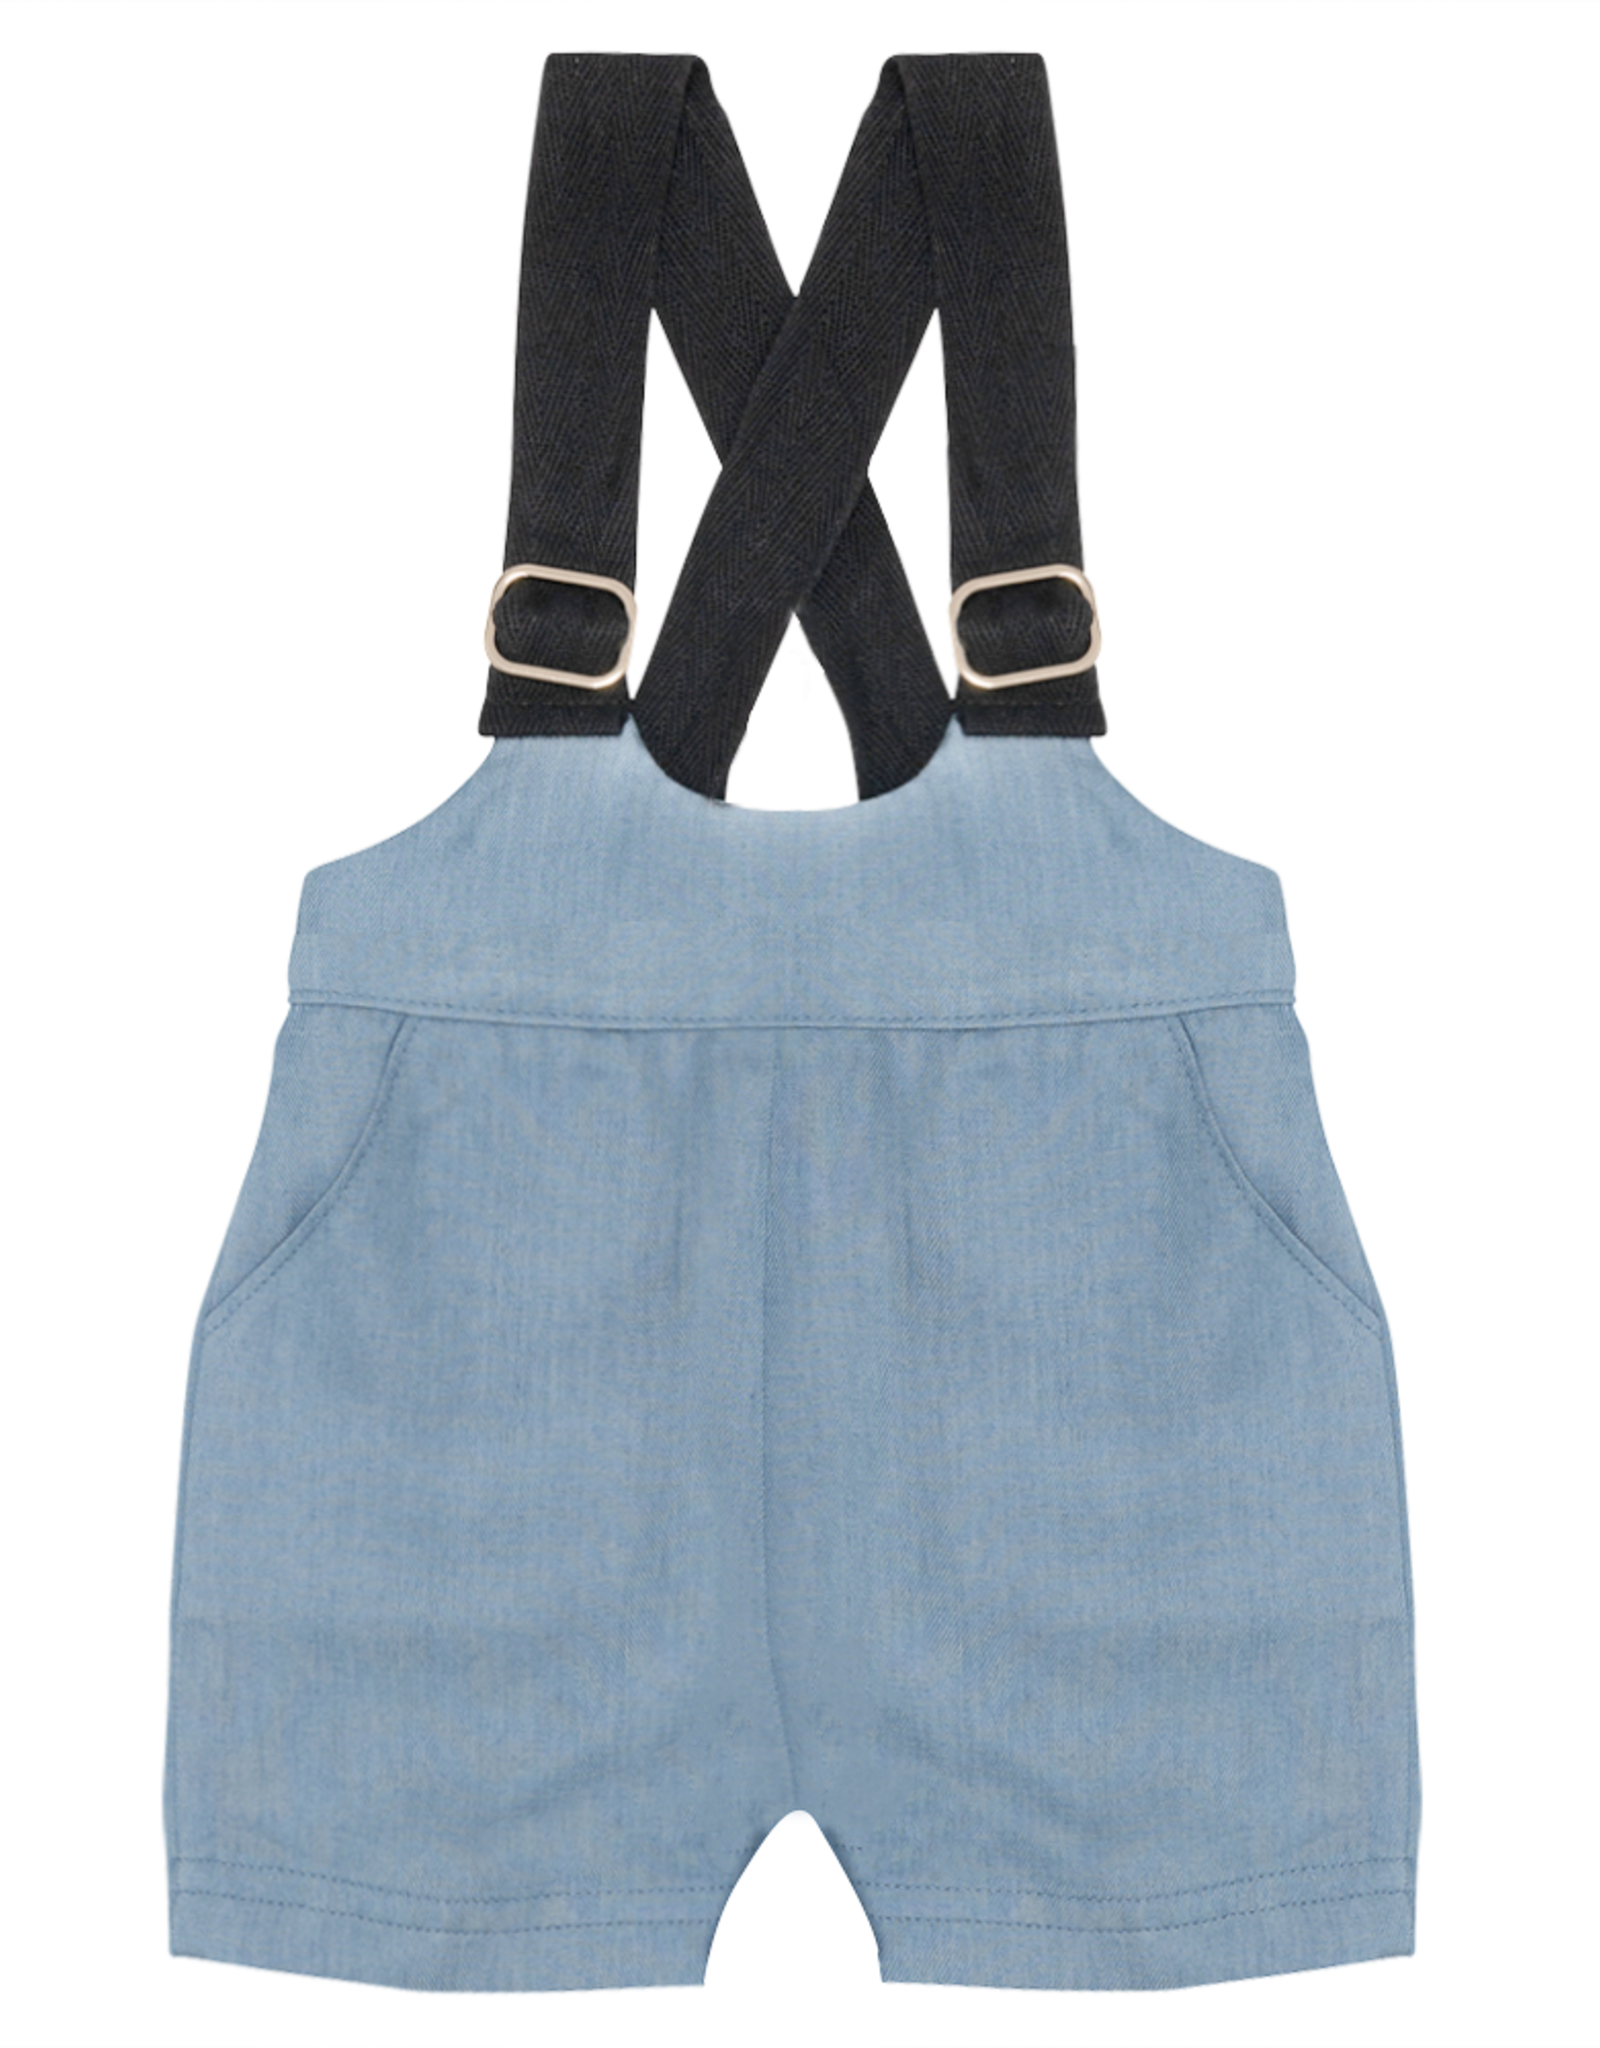 Pronto Pronto Baby Overall with Pockets